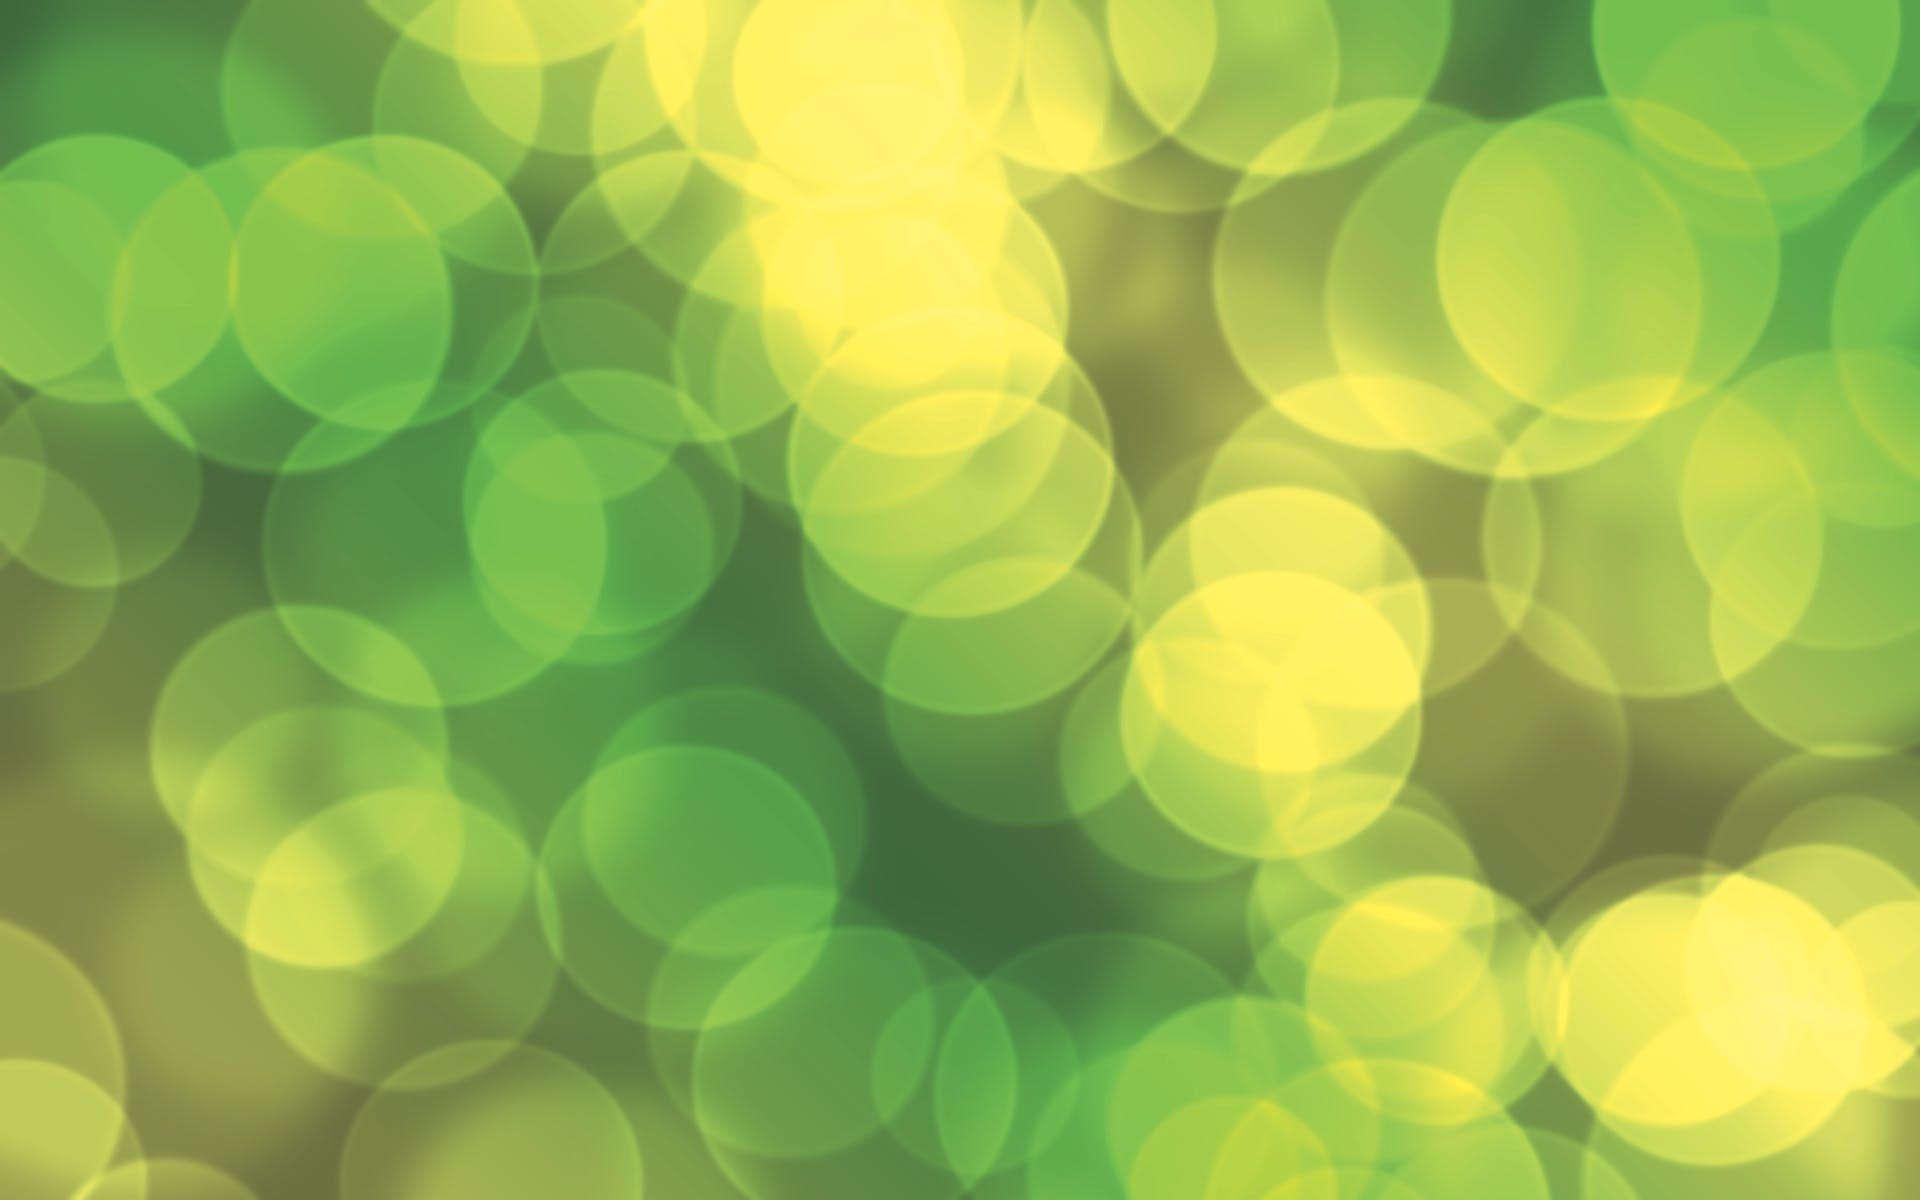 Free stock photo of yellow, green, bokeh, circles